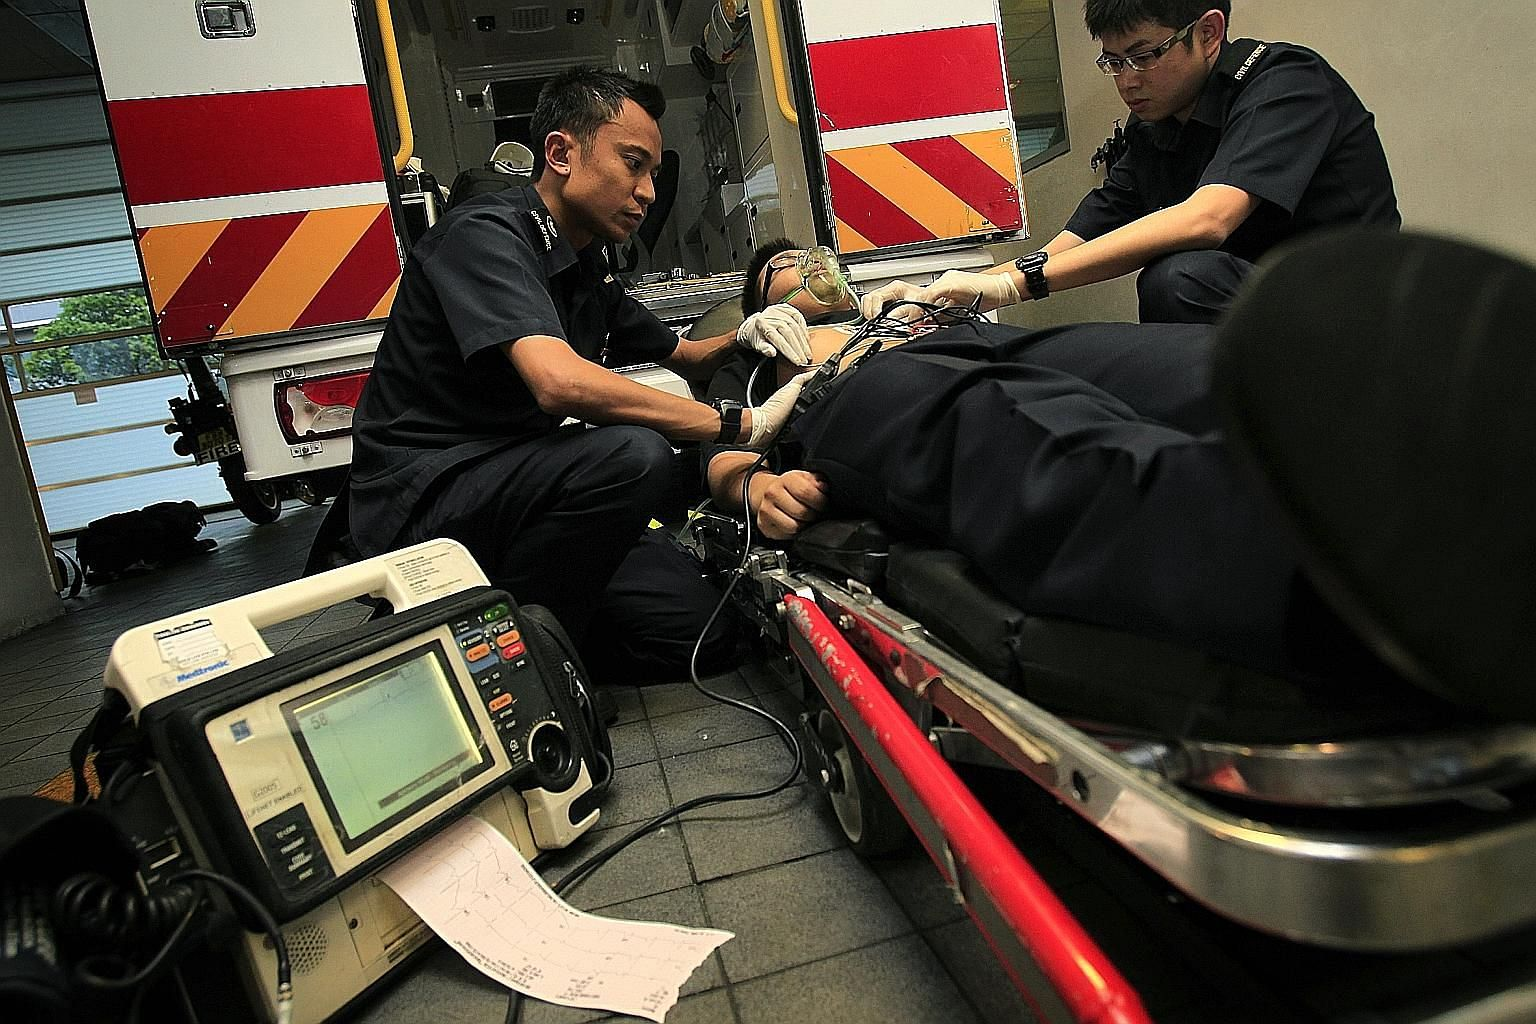 A 2011 file photo of a paramedic and a trainee demonstrating how an electrocardiogram is performed on a patient. NUH is one of just two places here which can deal with even the most complex heart problems at any time, day or night. The other is Natio